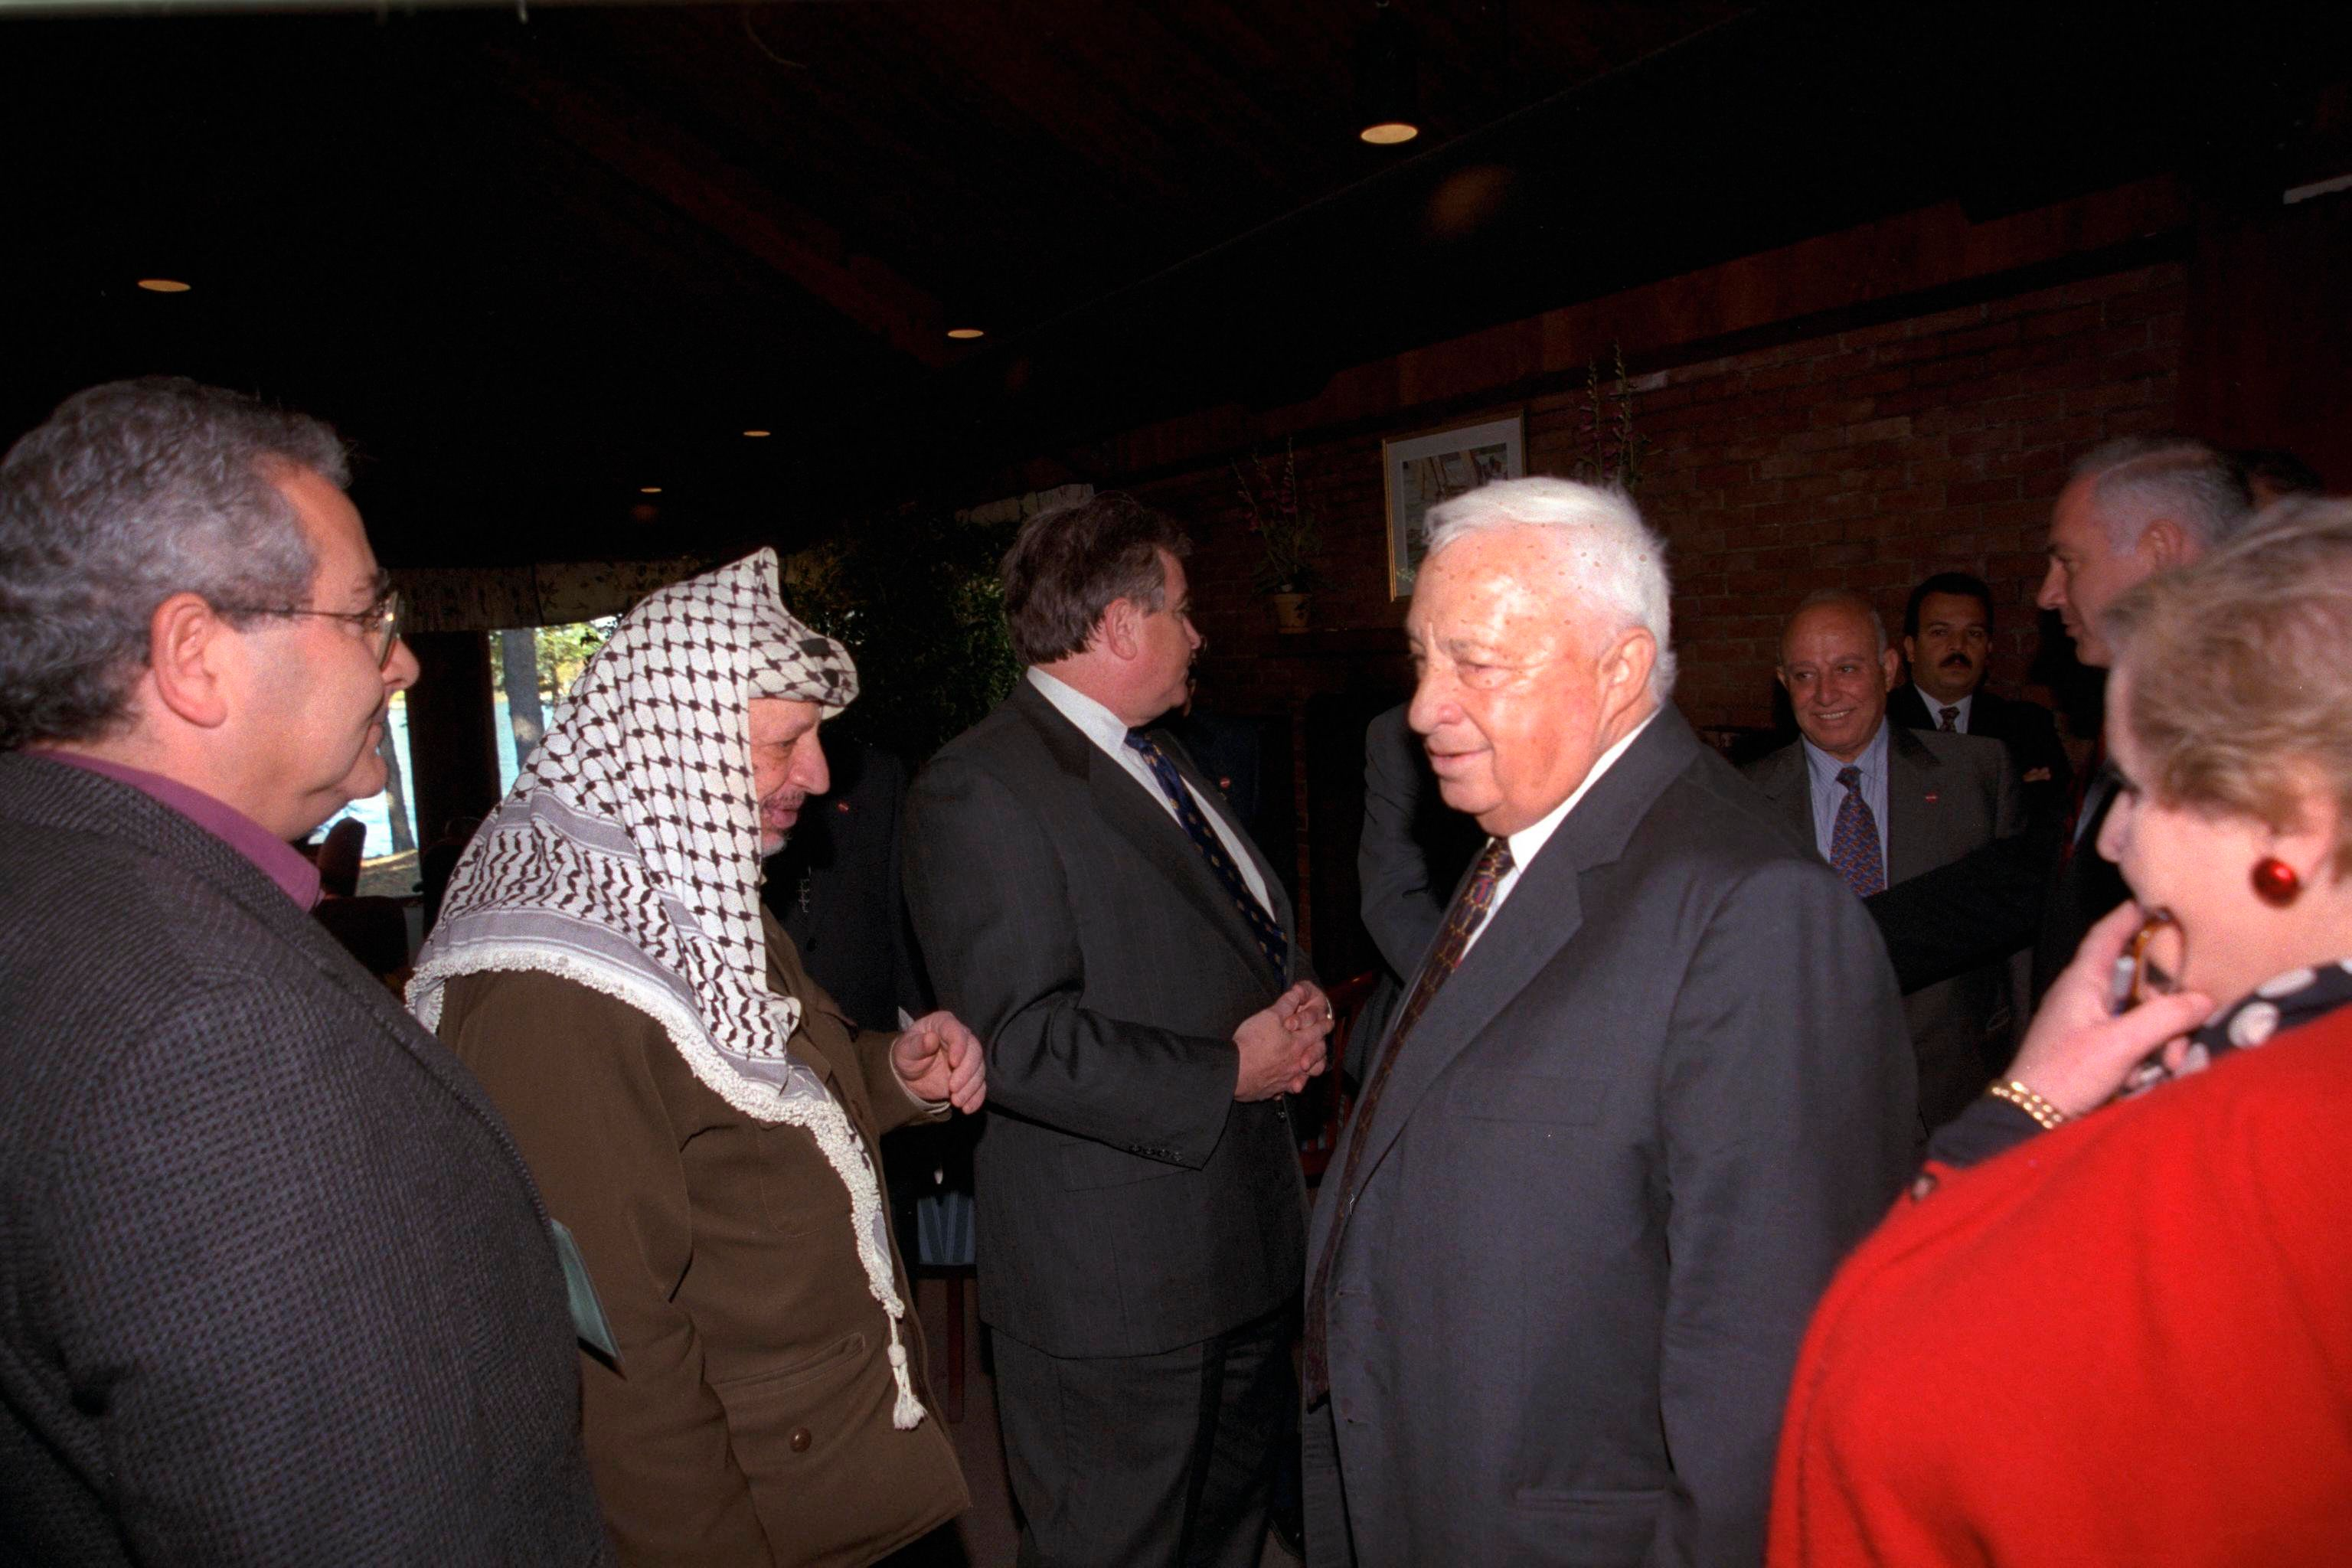 Israel's Foreign Minister Ariel Sharon (4th L) walks past Palestinian Leader Yasser Arafat (2nd L) during the Middle East peace summit at the Wye River Conference centre October 21, 1998, in this handout picture released by the Israeli Government Press Office (GPO). REUTERS/Avi Ohayon/GPO/Handout (UNITED STATES - Tags: POLITICS) FOR EDITORIAL USE ONLY. NOT FOR SALE FOR MARKETING OR ADVERTISING CAMPAIGNS. THIS IMAGE HAS BEEN SUPPLIED BY A THIRD PARTY. IT IS DISTRIBUTED, EXACTLY AS RECEIVED BY REUTERS, AS A SERVICE TO CLIENTS. ISRAEL OUT. NO COMMERCIAL OR EDITORIAL SALES IN ISRAEL